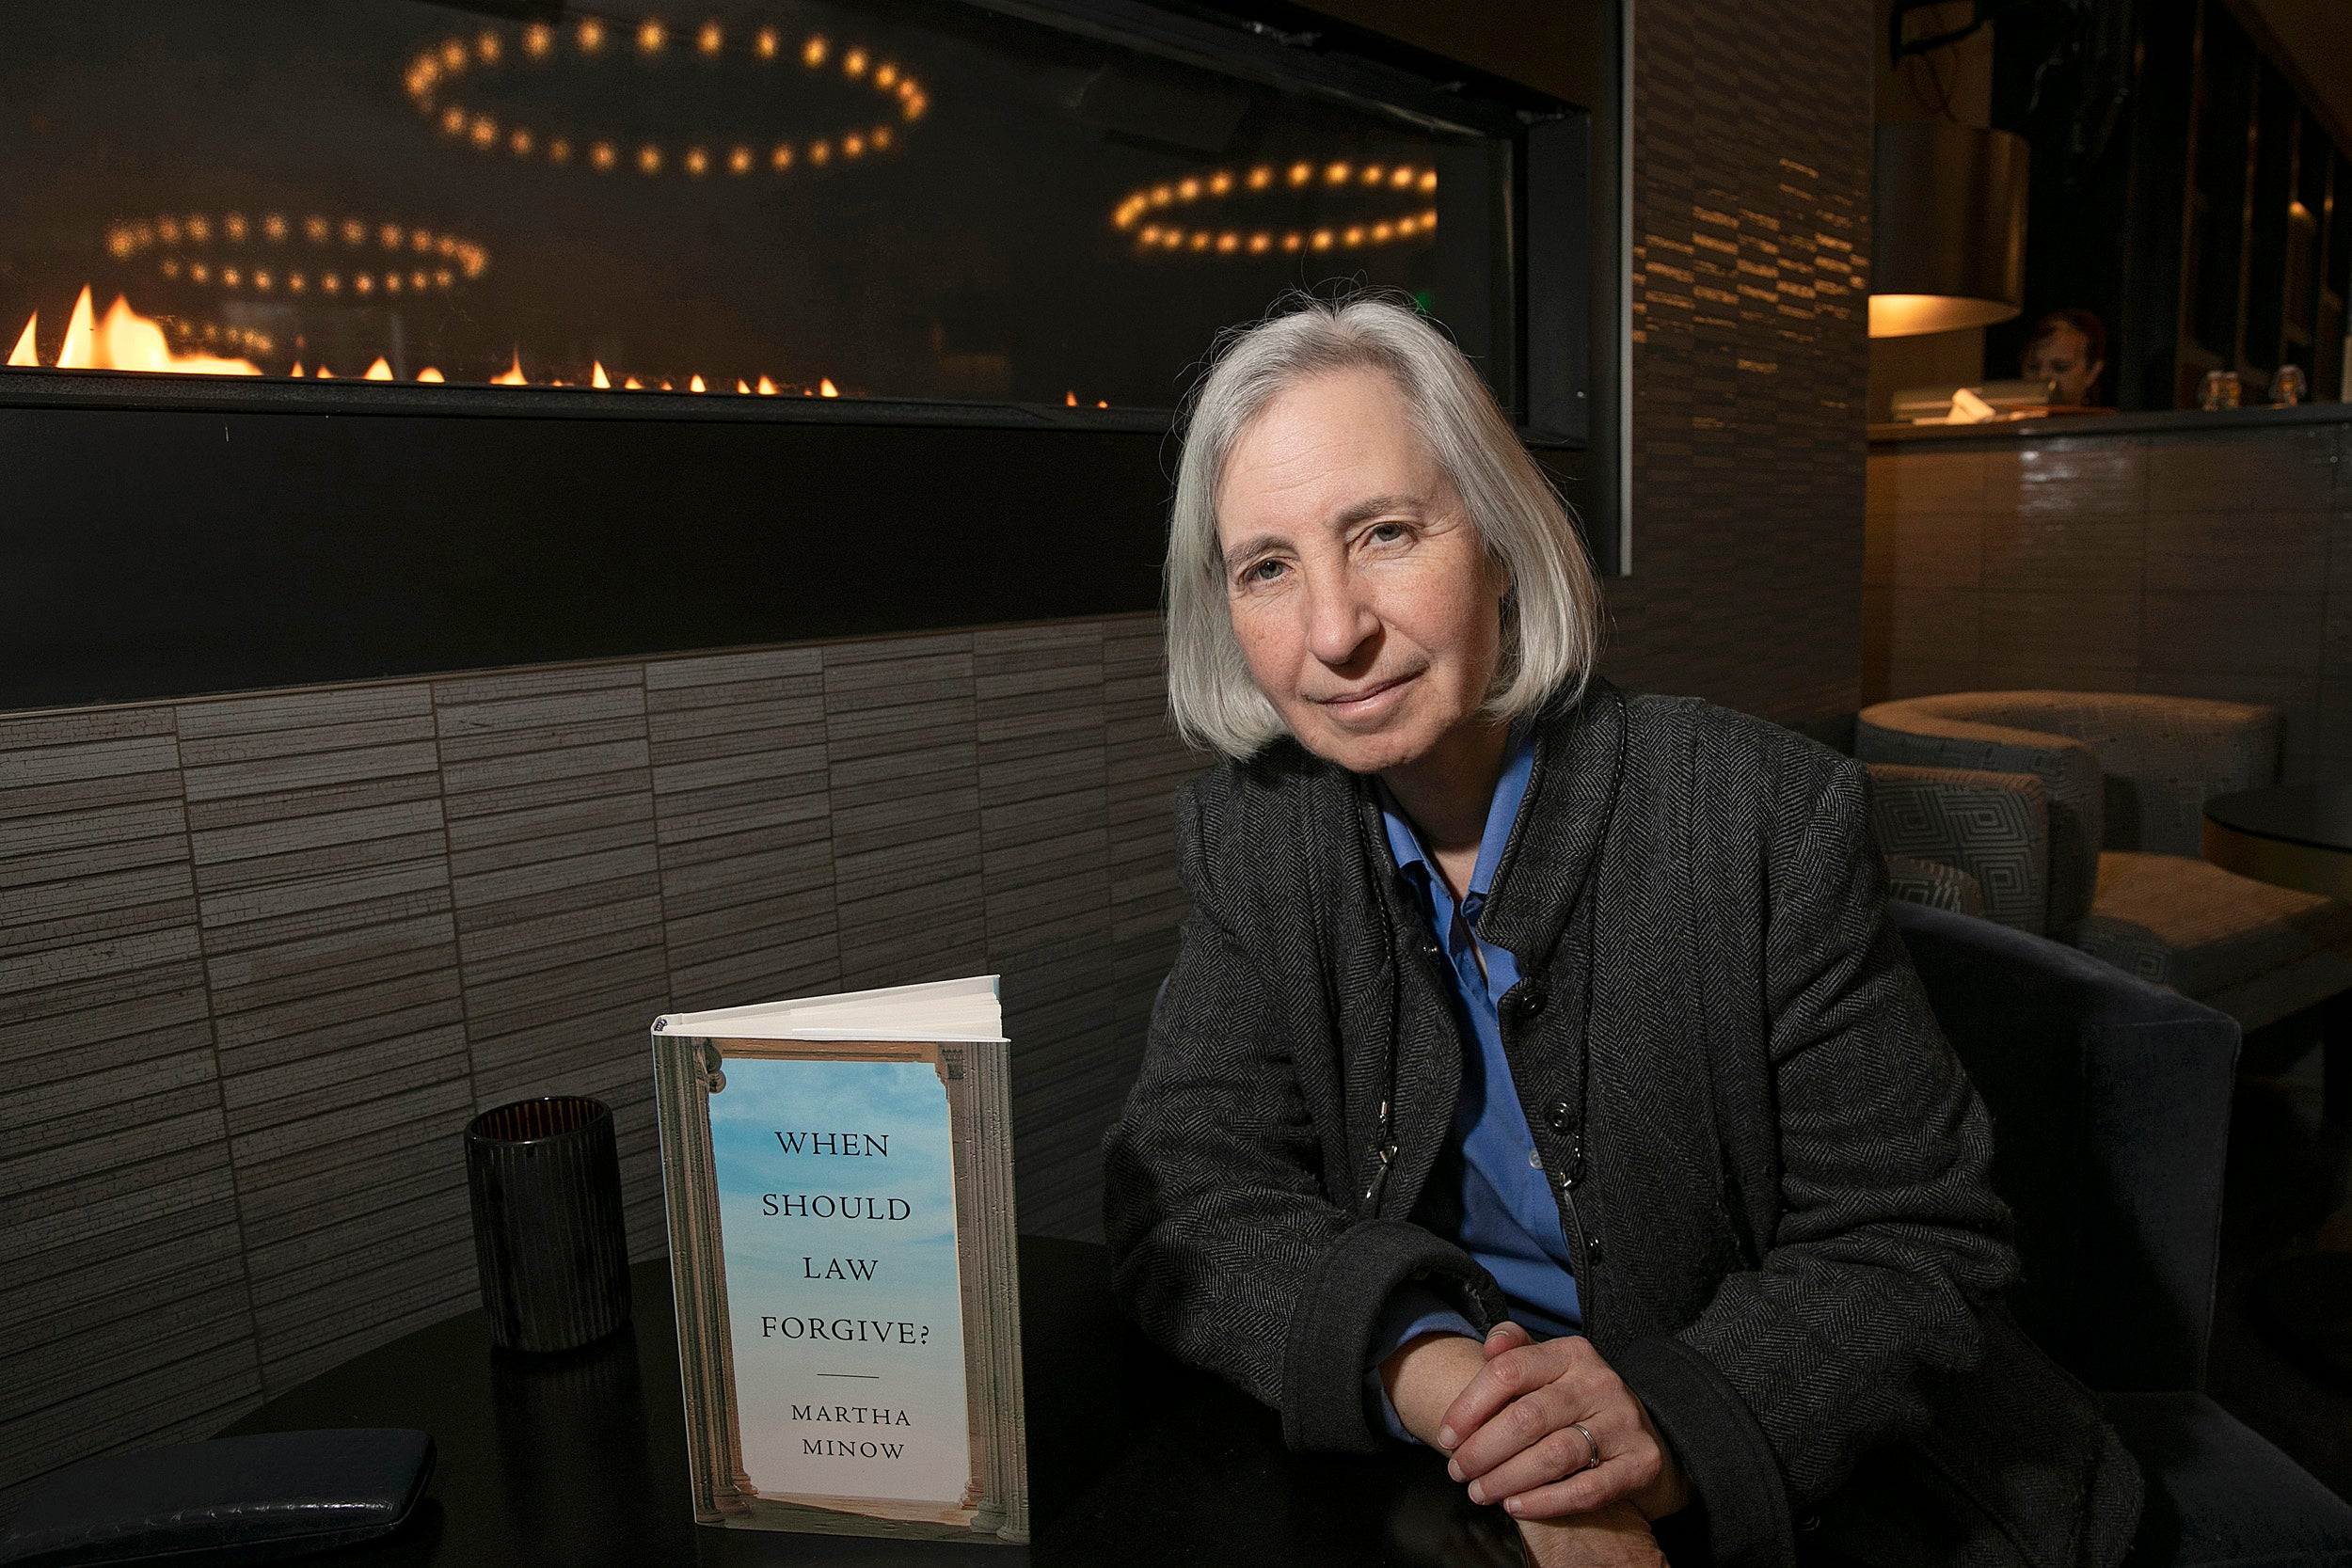 Professor Martha Minnow sitting at a table with her book in front of her.